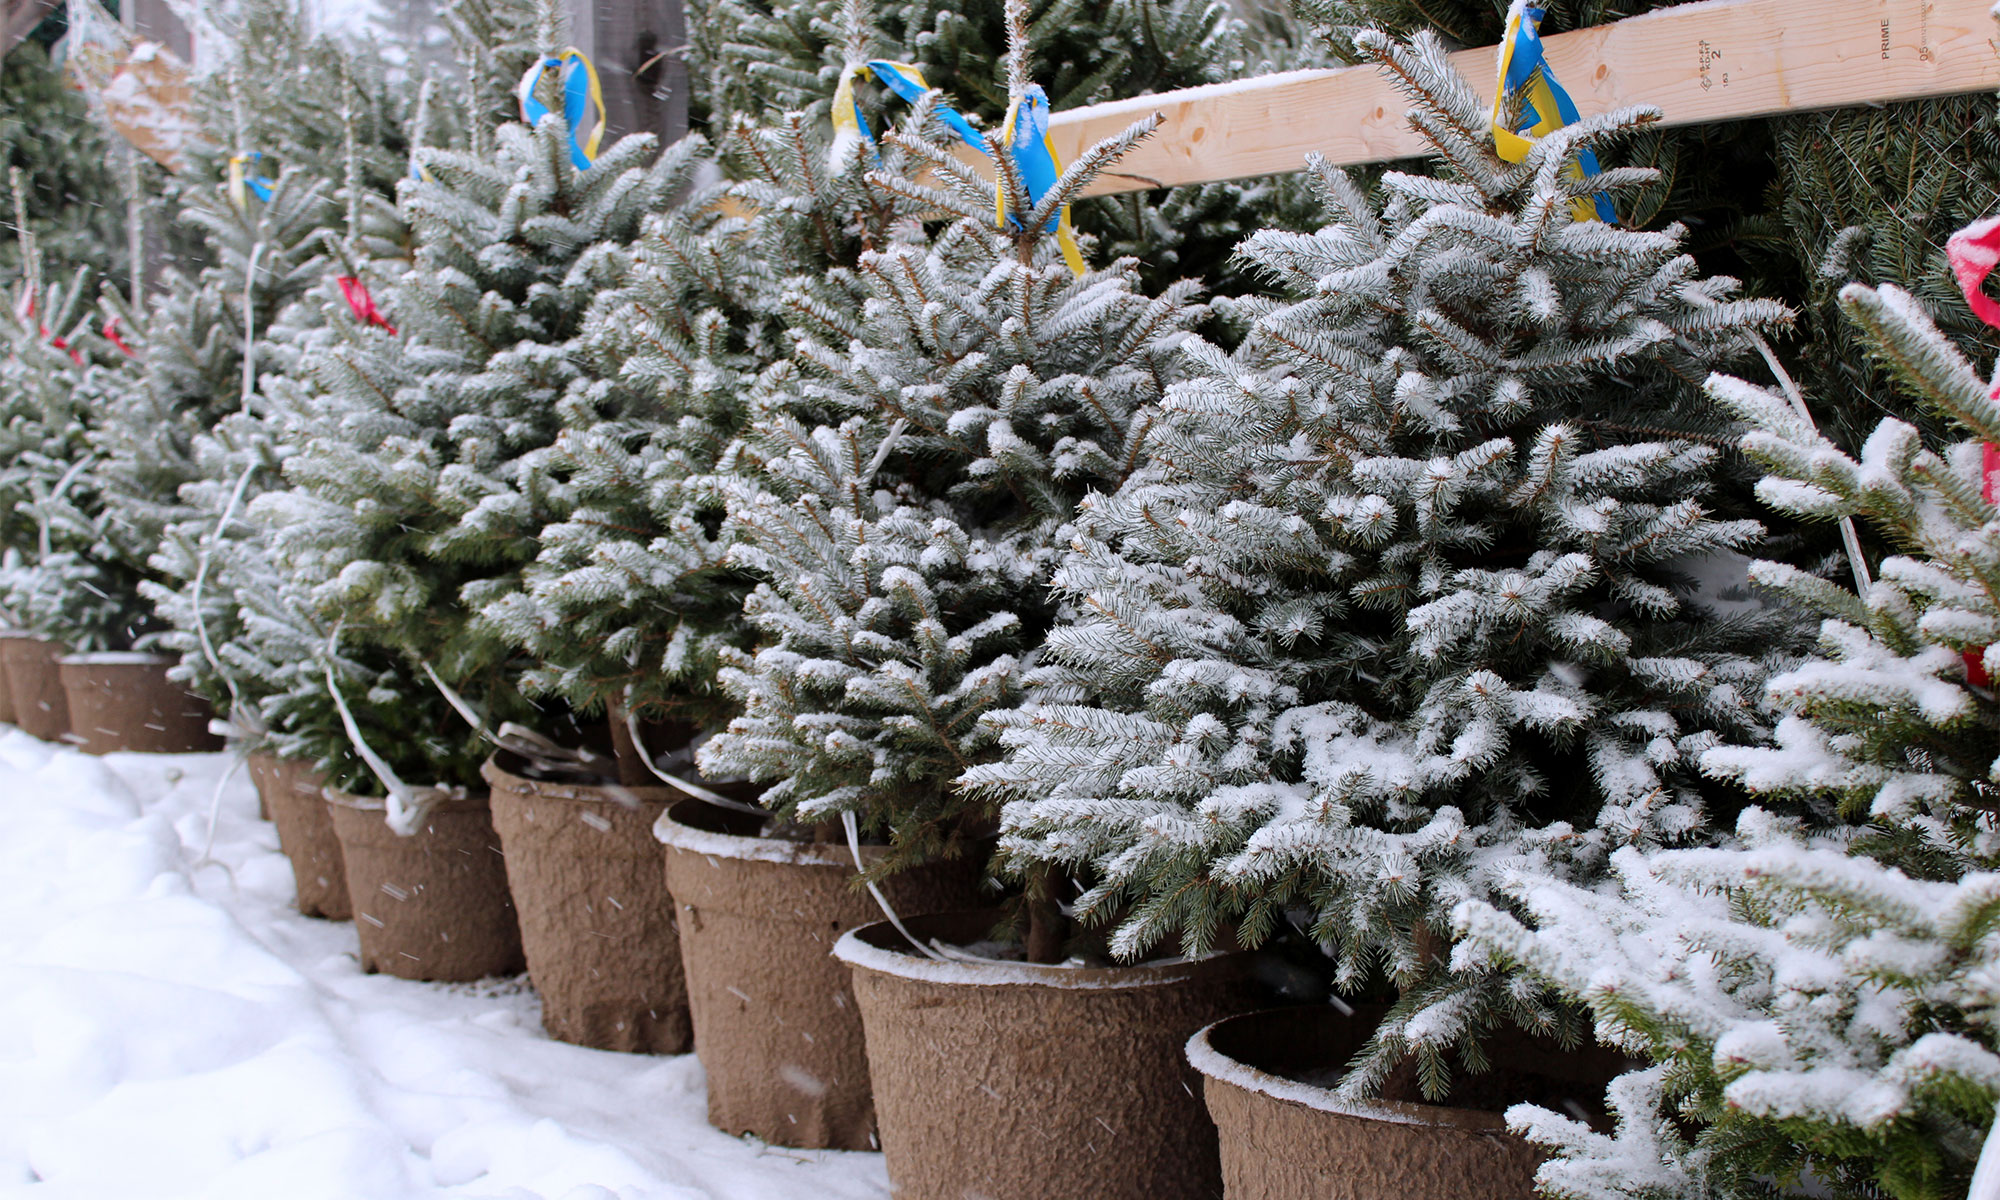 Blue spruce trees grown in containers.